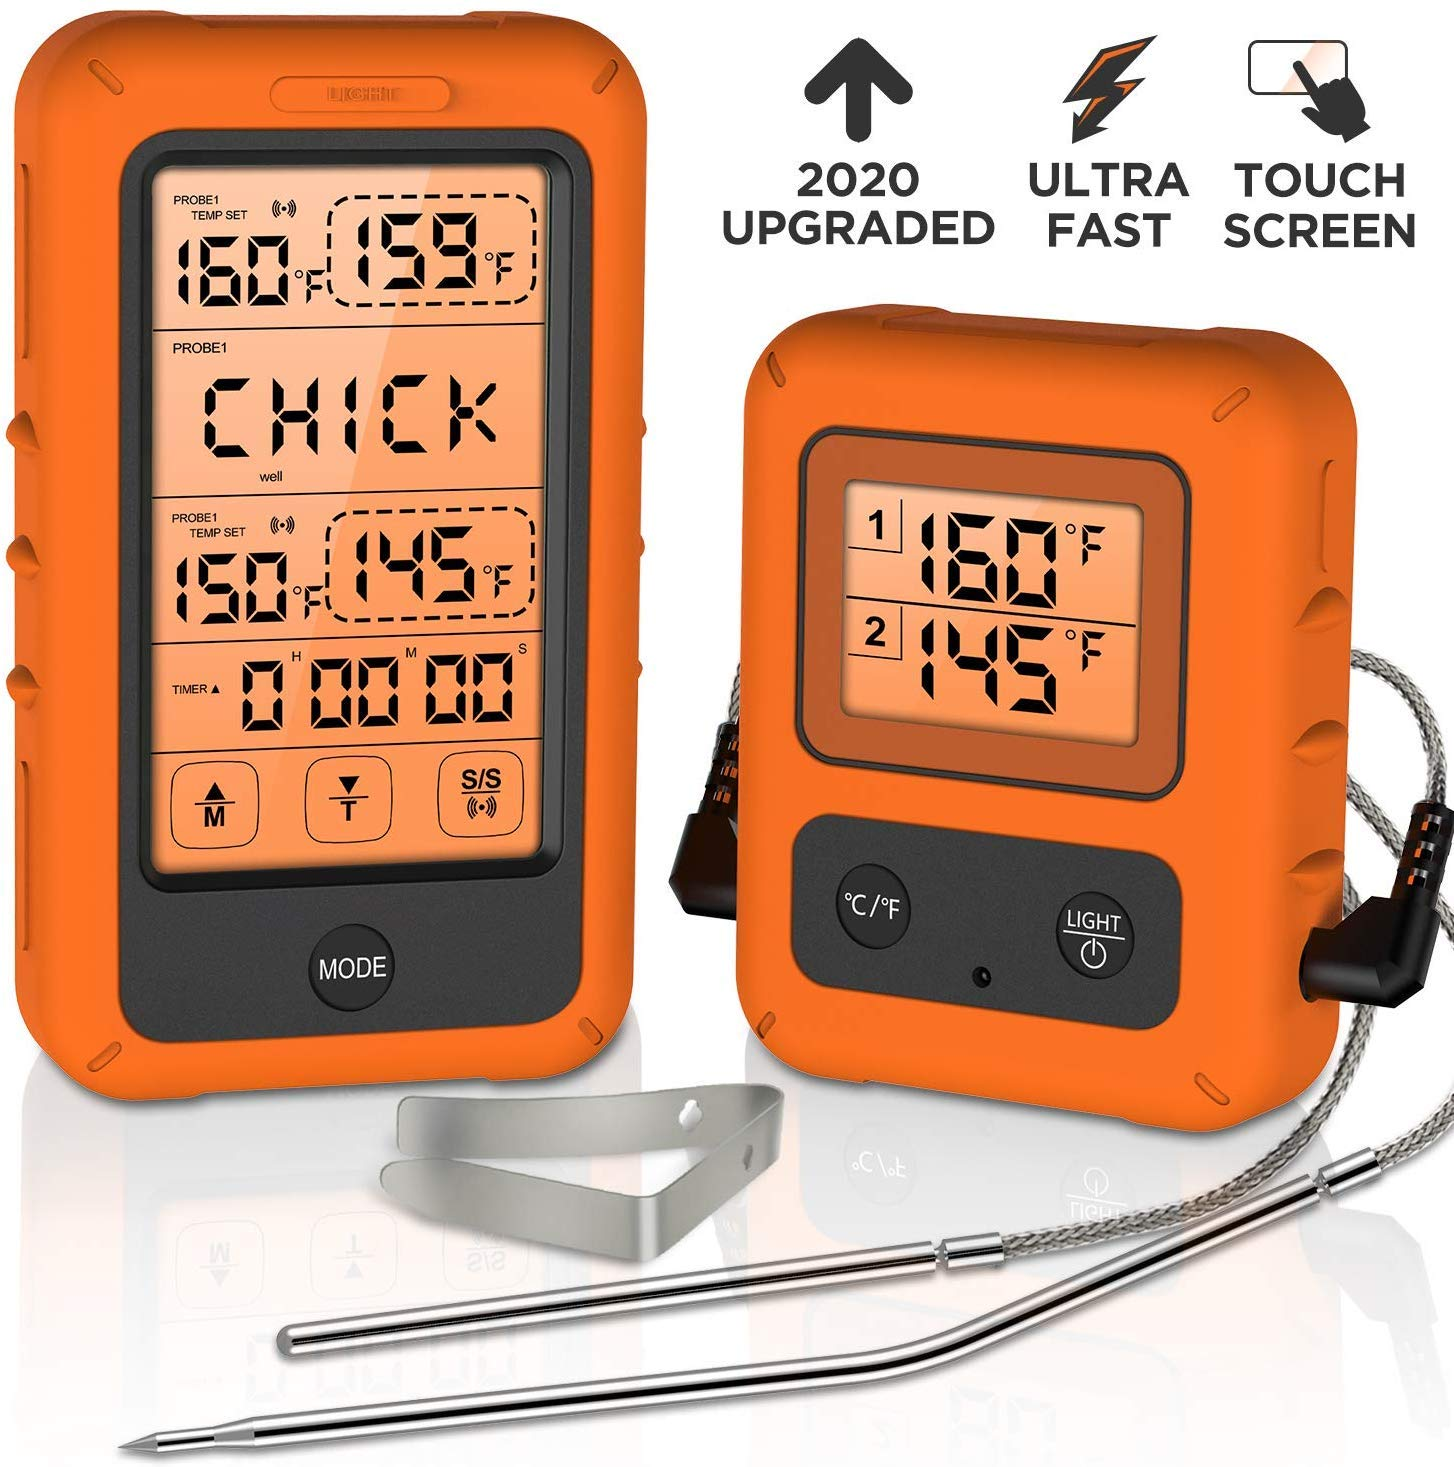 Wireless Digital Meat Thermometer, Olivivi BBQ Cooking Food thermometer with large LCD Display and Touchscreen control, Instant Read Meat Thermometer for Grill Oven Smoker Thermometer by Olivivi